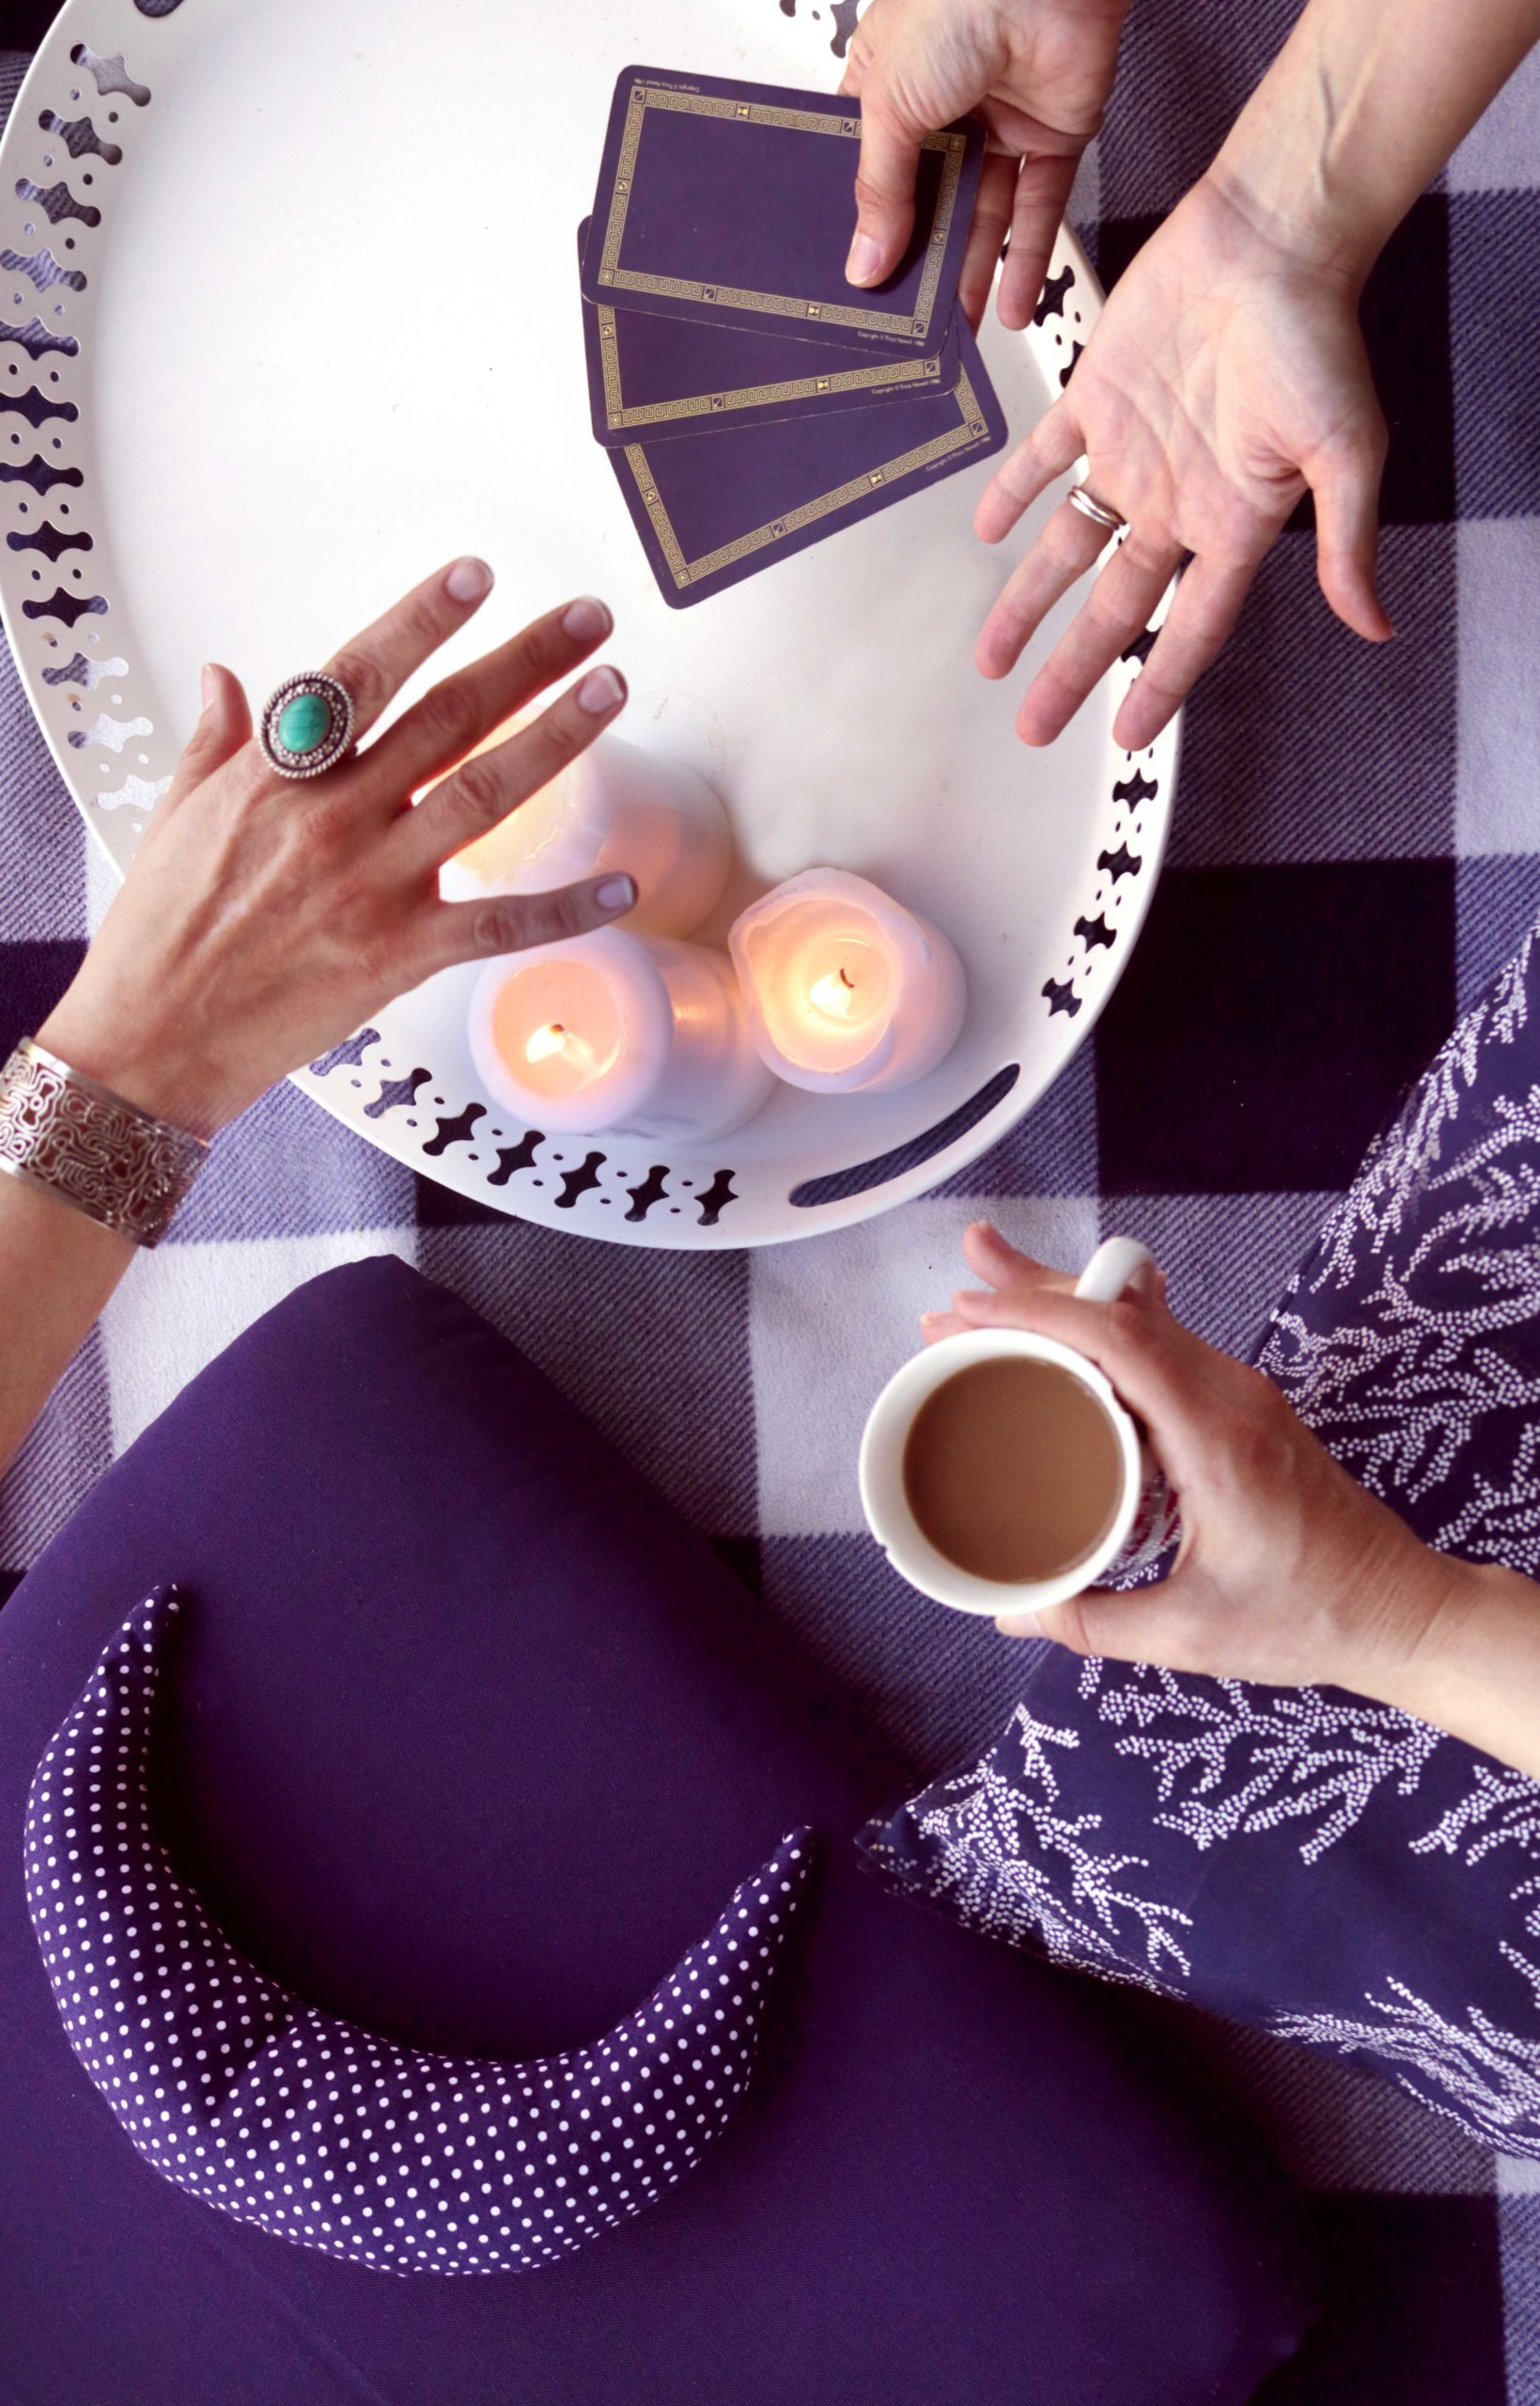 The Indigo Moon is a forum for witches and magical practitioners to share spells, recipes and natural living tips.